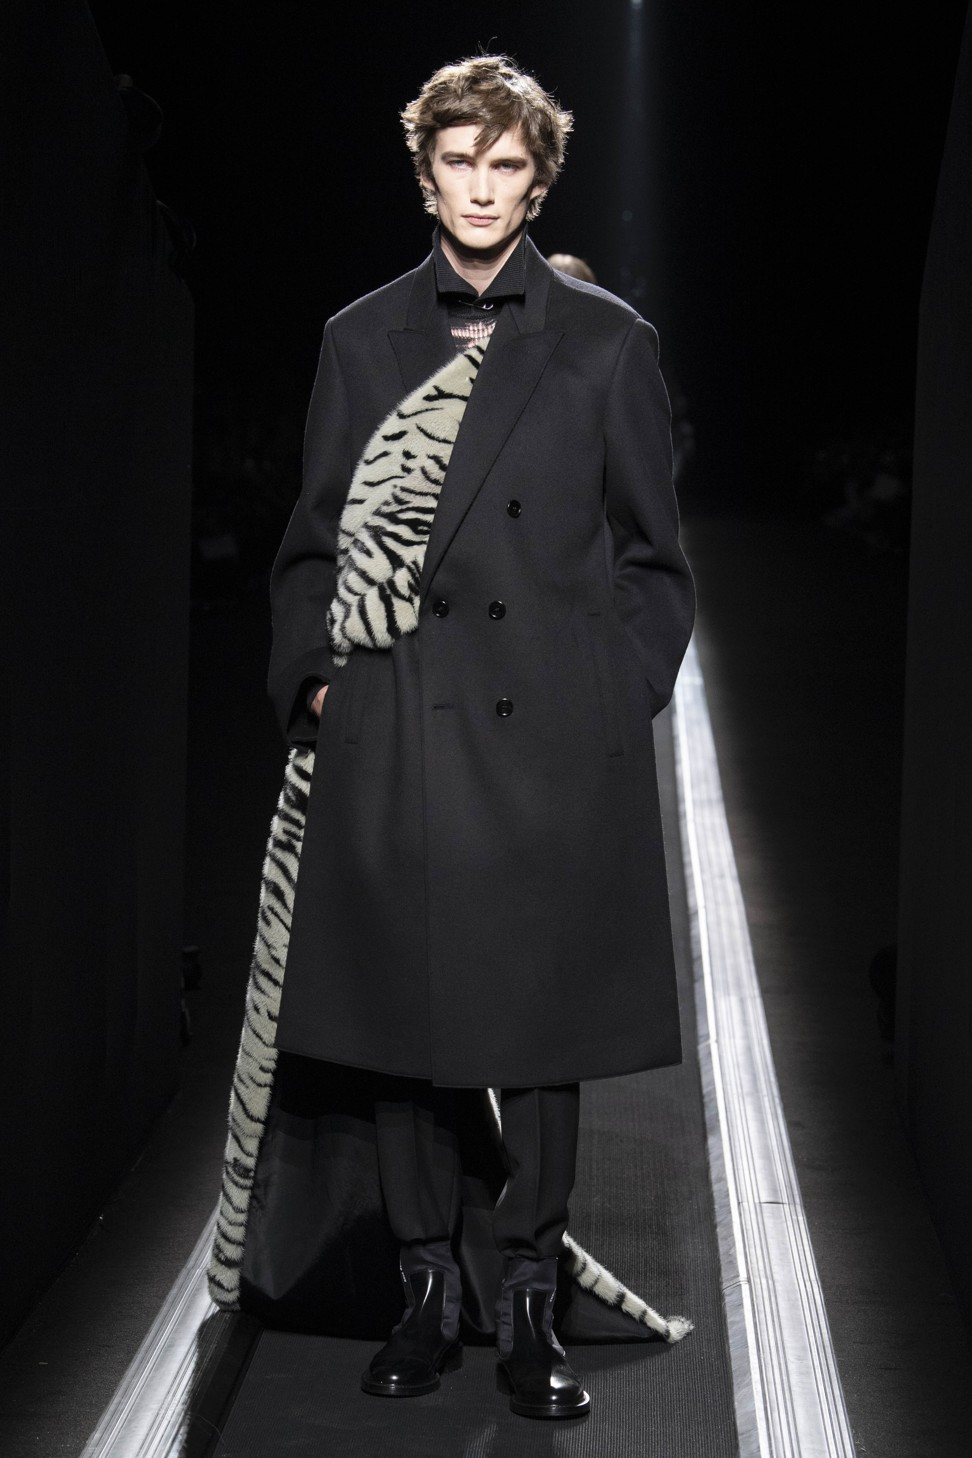 STYLE Edit: Dior's winter collection delves into the man behind the brand